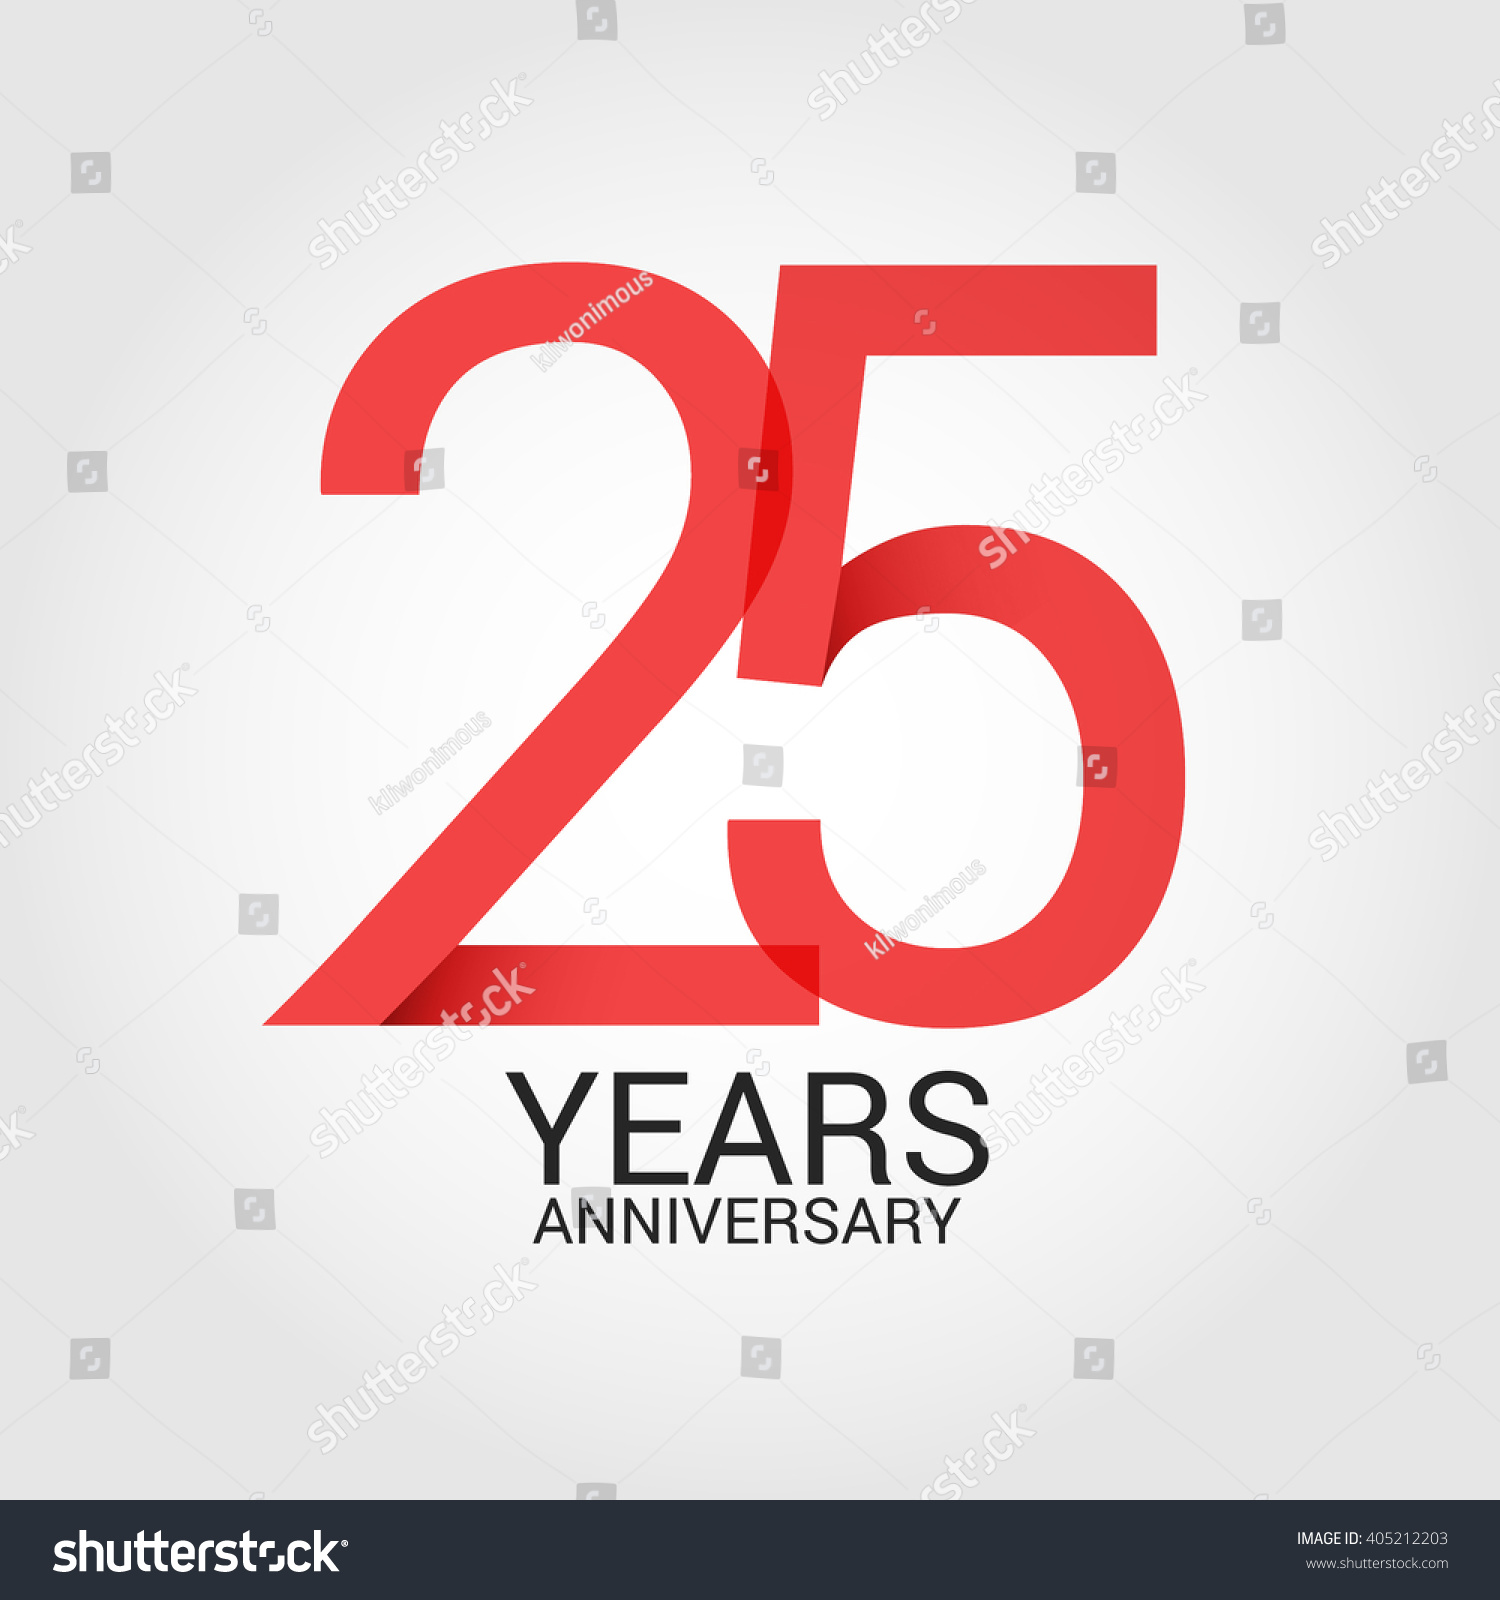 25 Years Anniversary Signs Symbols Simple Stock Vector Royalty Free